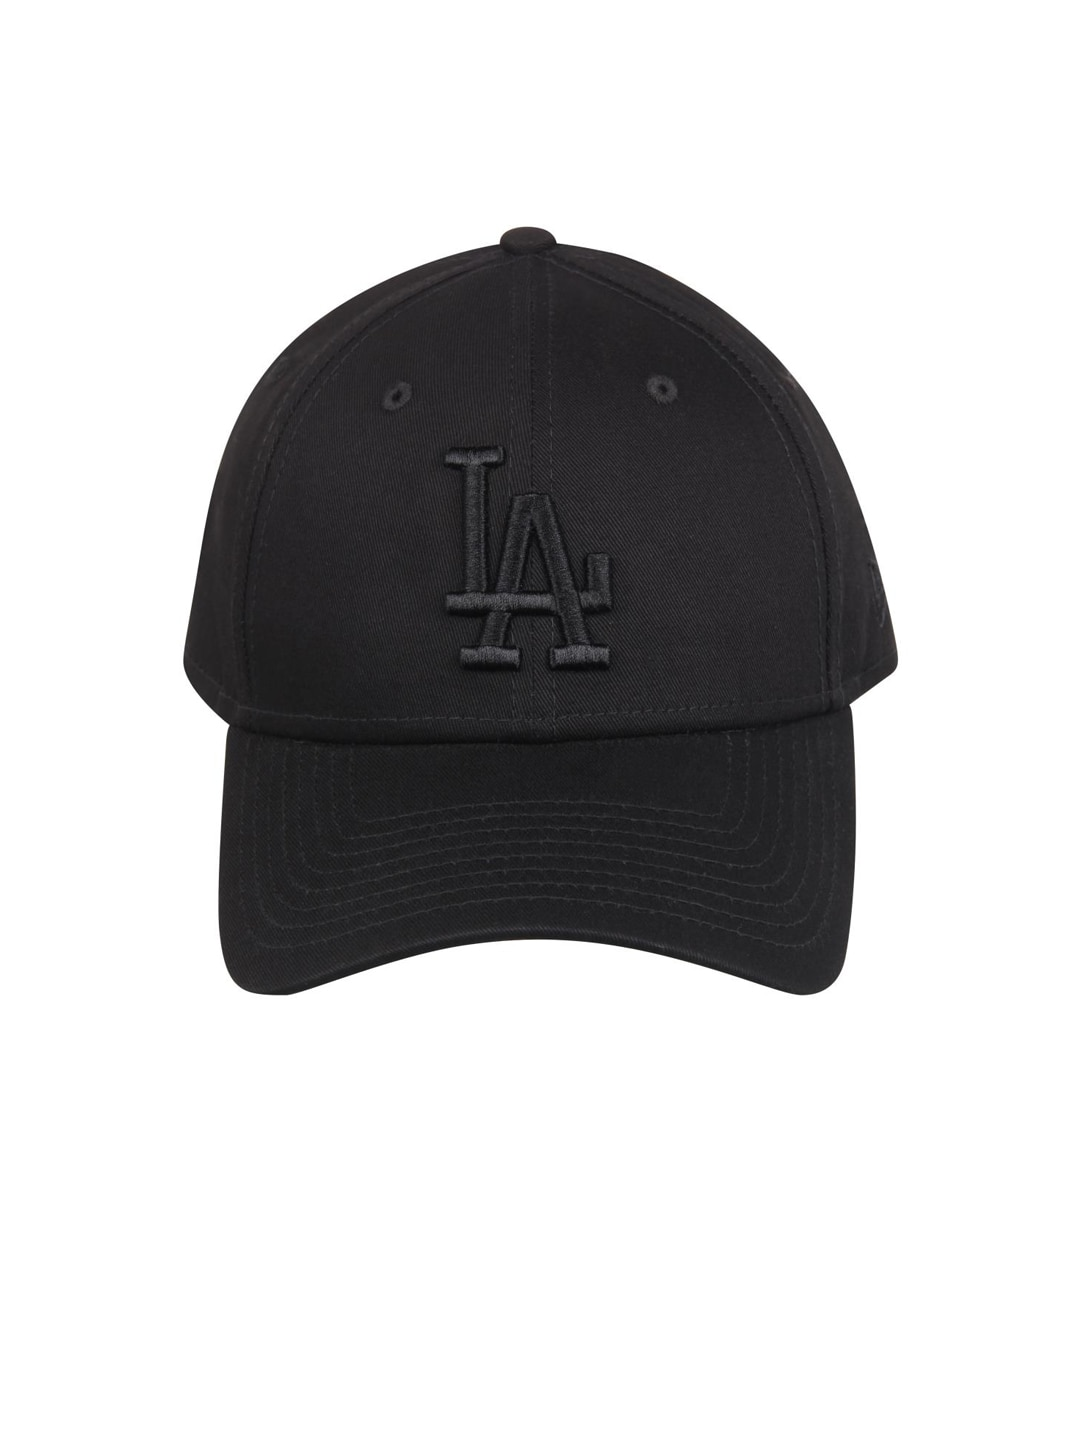 b0e8d11458ab6 Caps - Buy Caps for Men